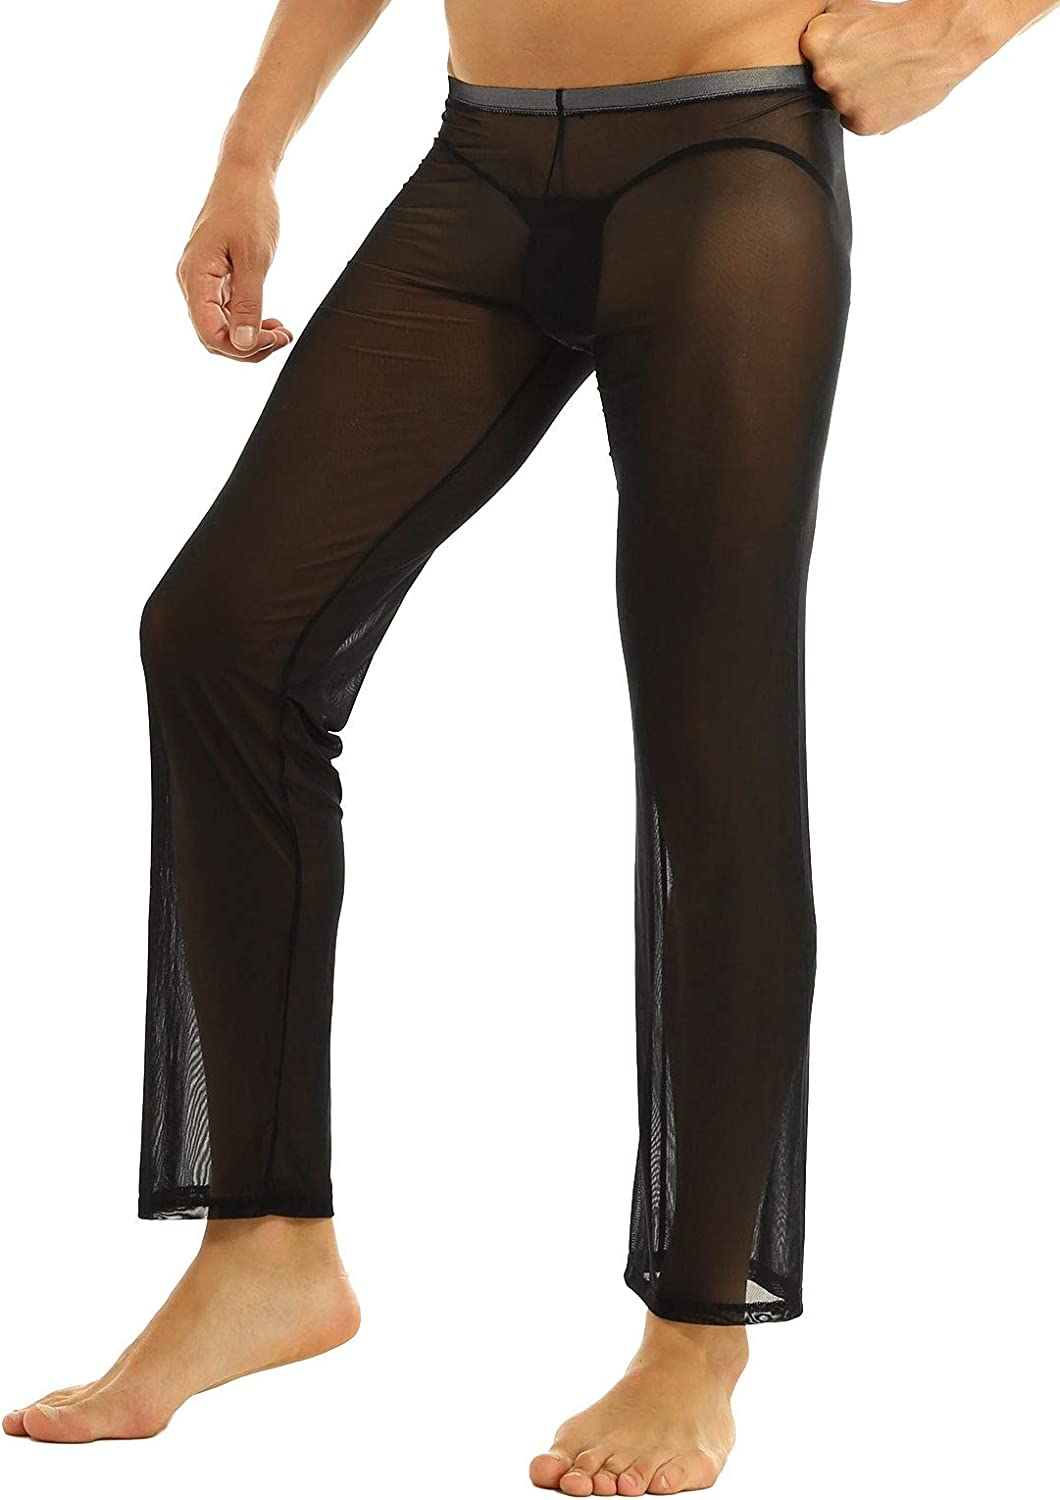 Aislor Men's See Through Sheer Mesh Netted Legging Pants Lounge Trousers Underwear Clubwear